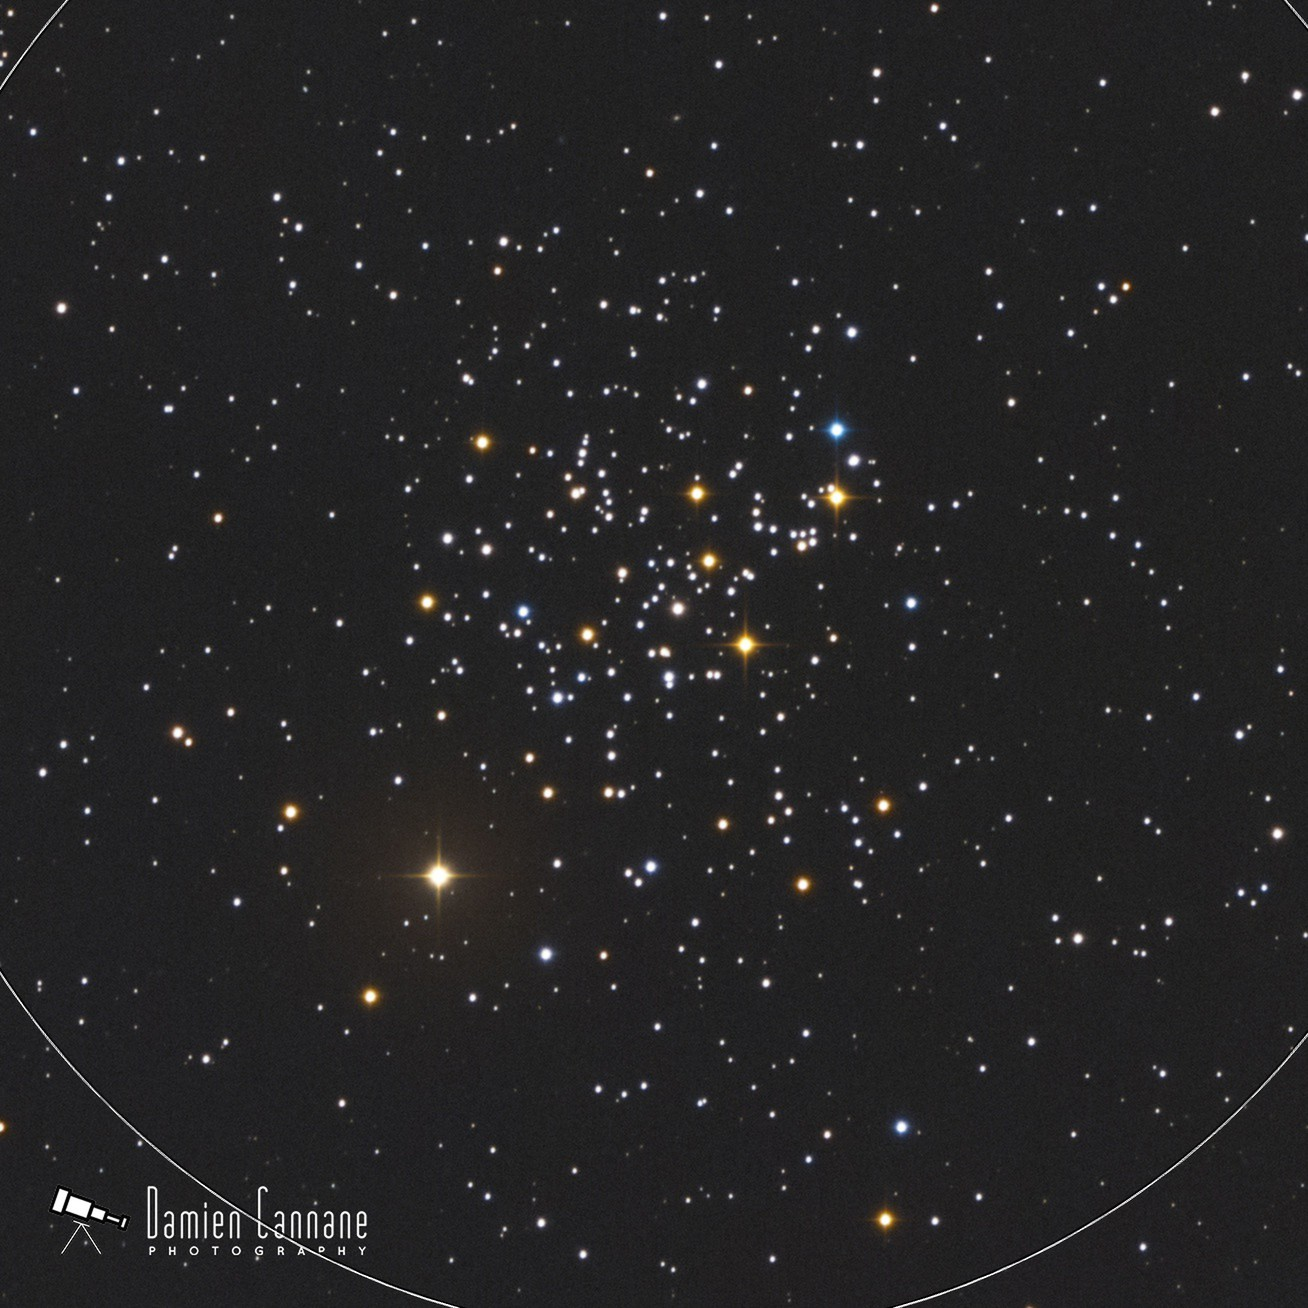 The Messier 67 Open Cluster in Cancer